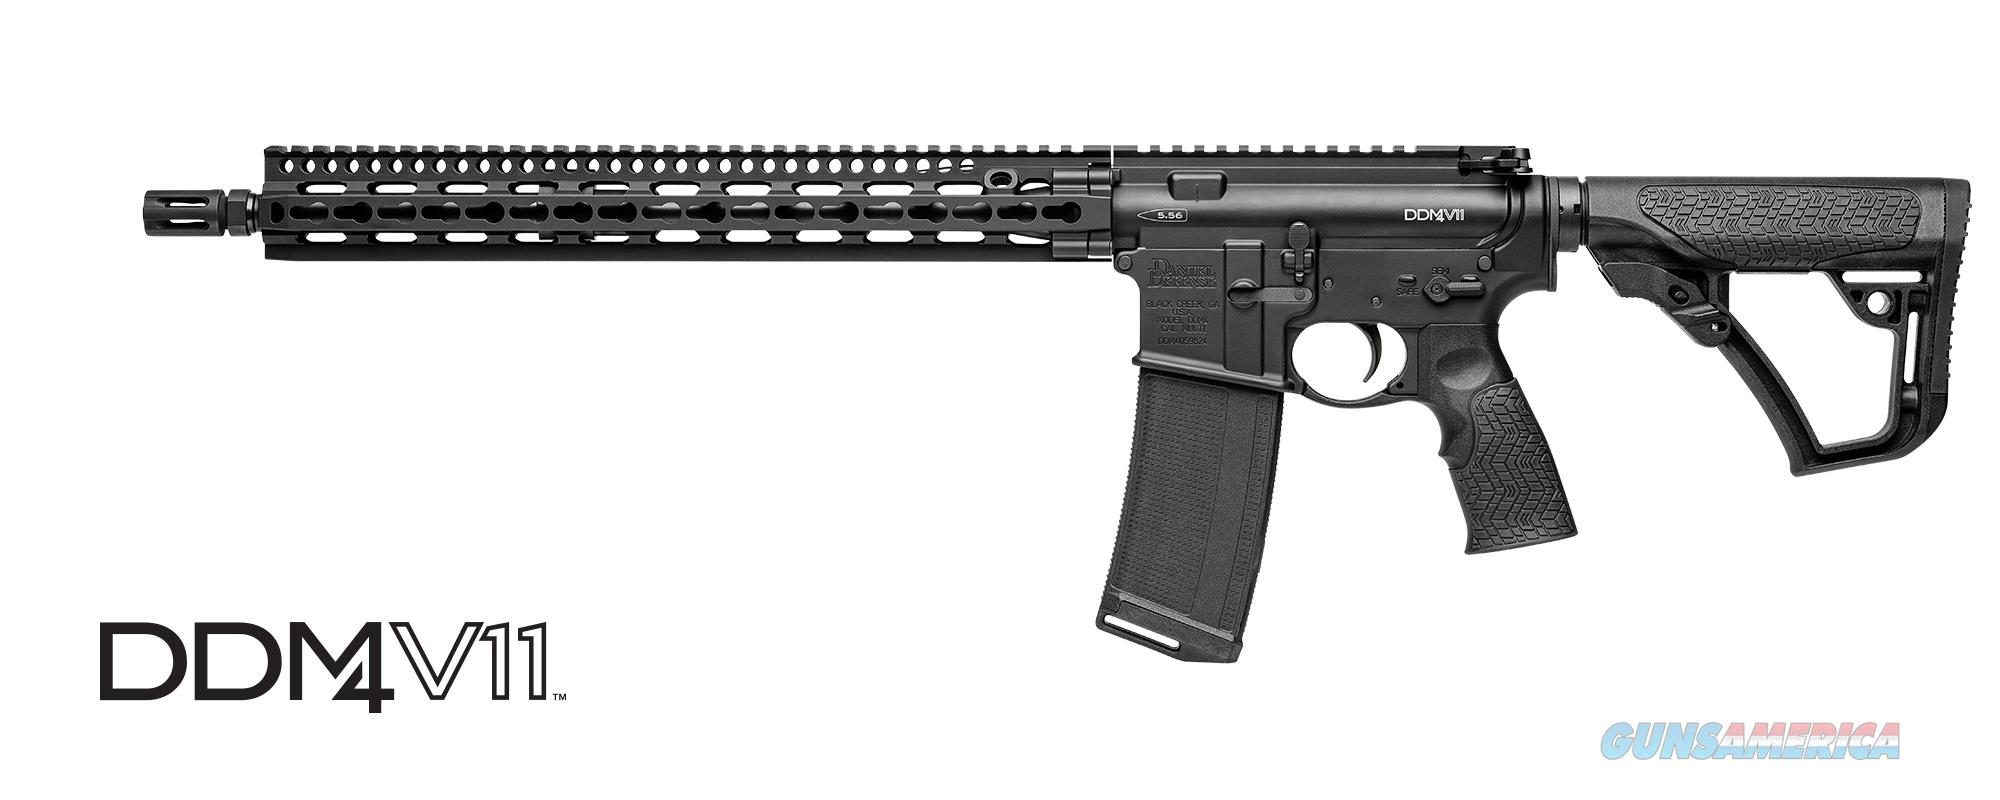 Daniel Defense DDM4V11   Guns > Rifles > Daniel Defense > Complete Rifles